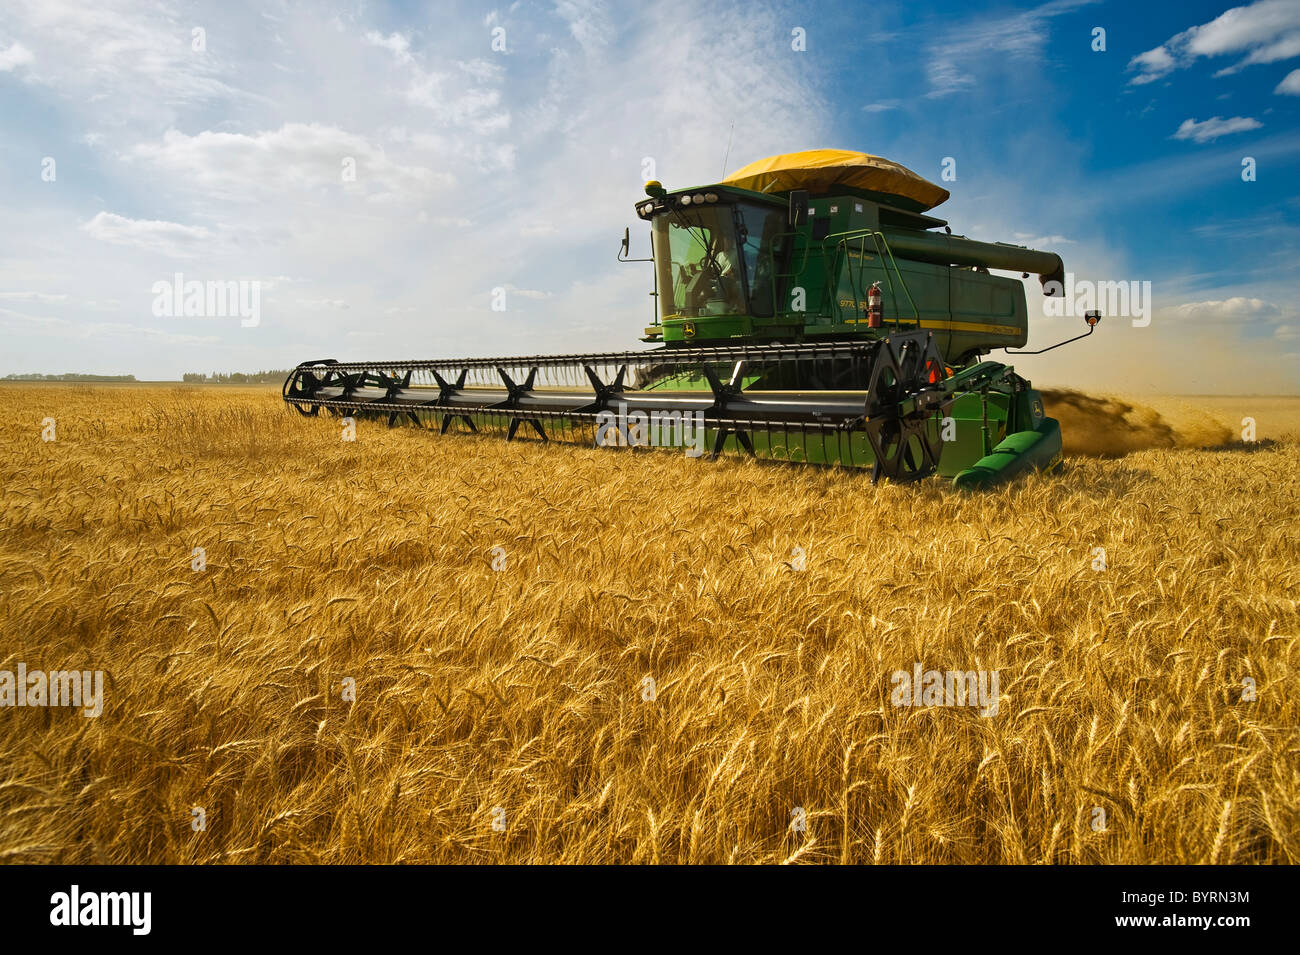 Agriculture - A John Deere combine harvests mature winter wheat in late afternoon light / near Kane, Manitoba, Canada. - Stock Image